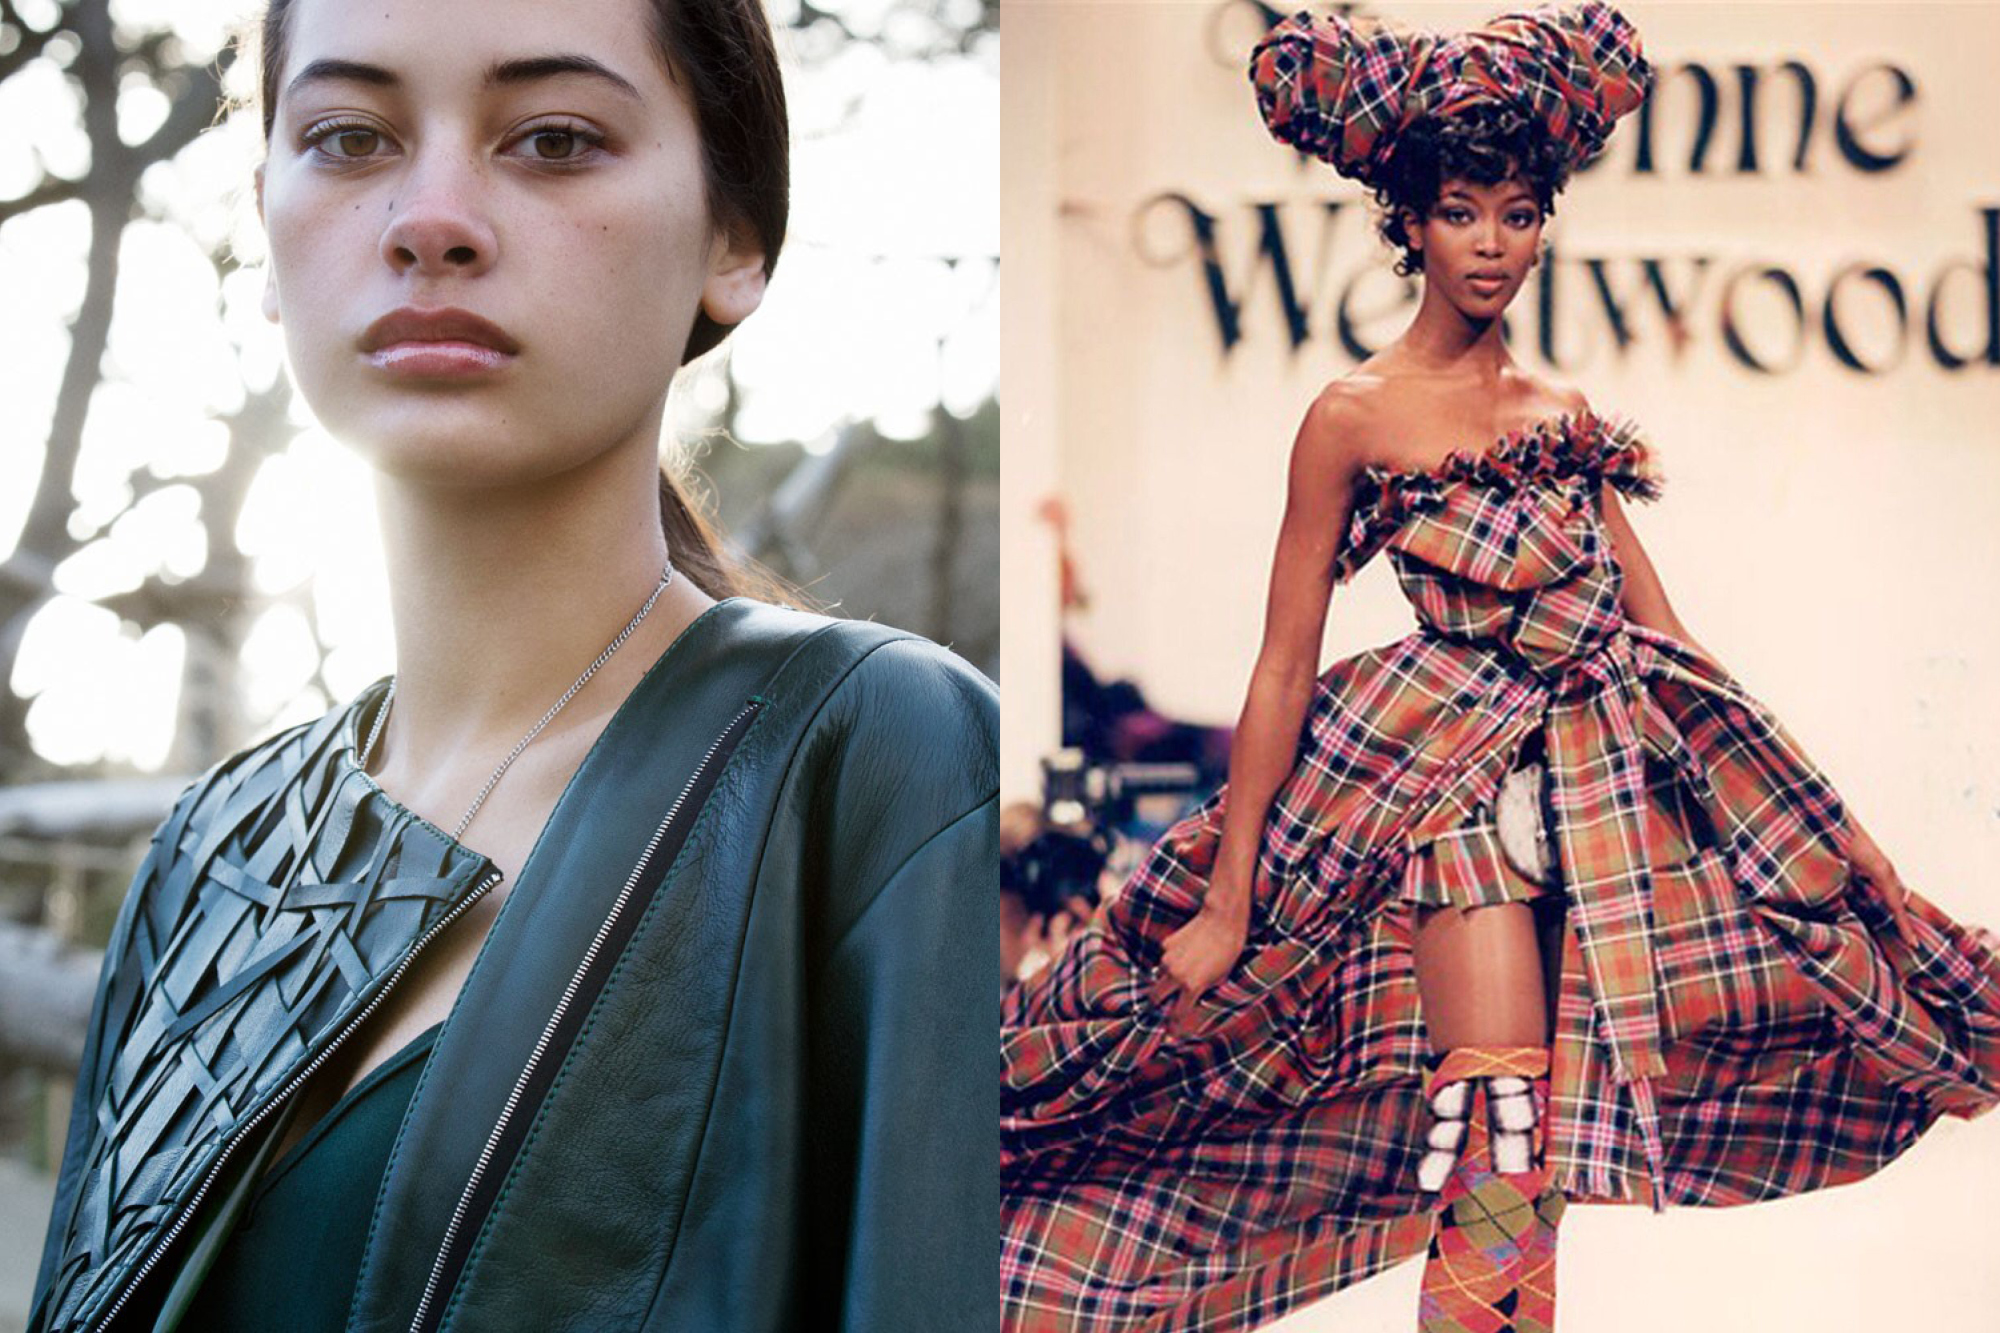 Culturally-inspired fashion. Left: Garments by Kiri Nathan, Right: Garments by Vivienne Westwood